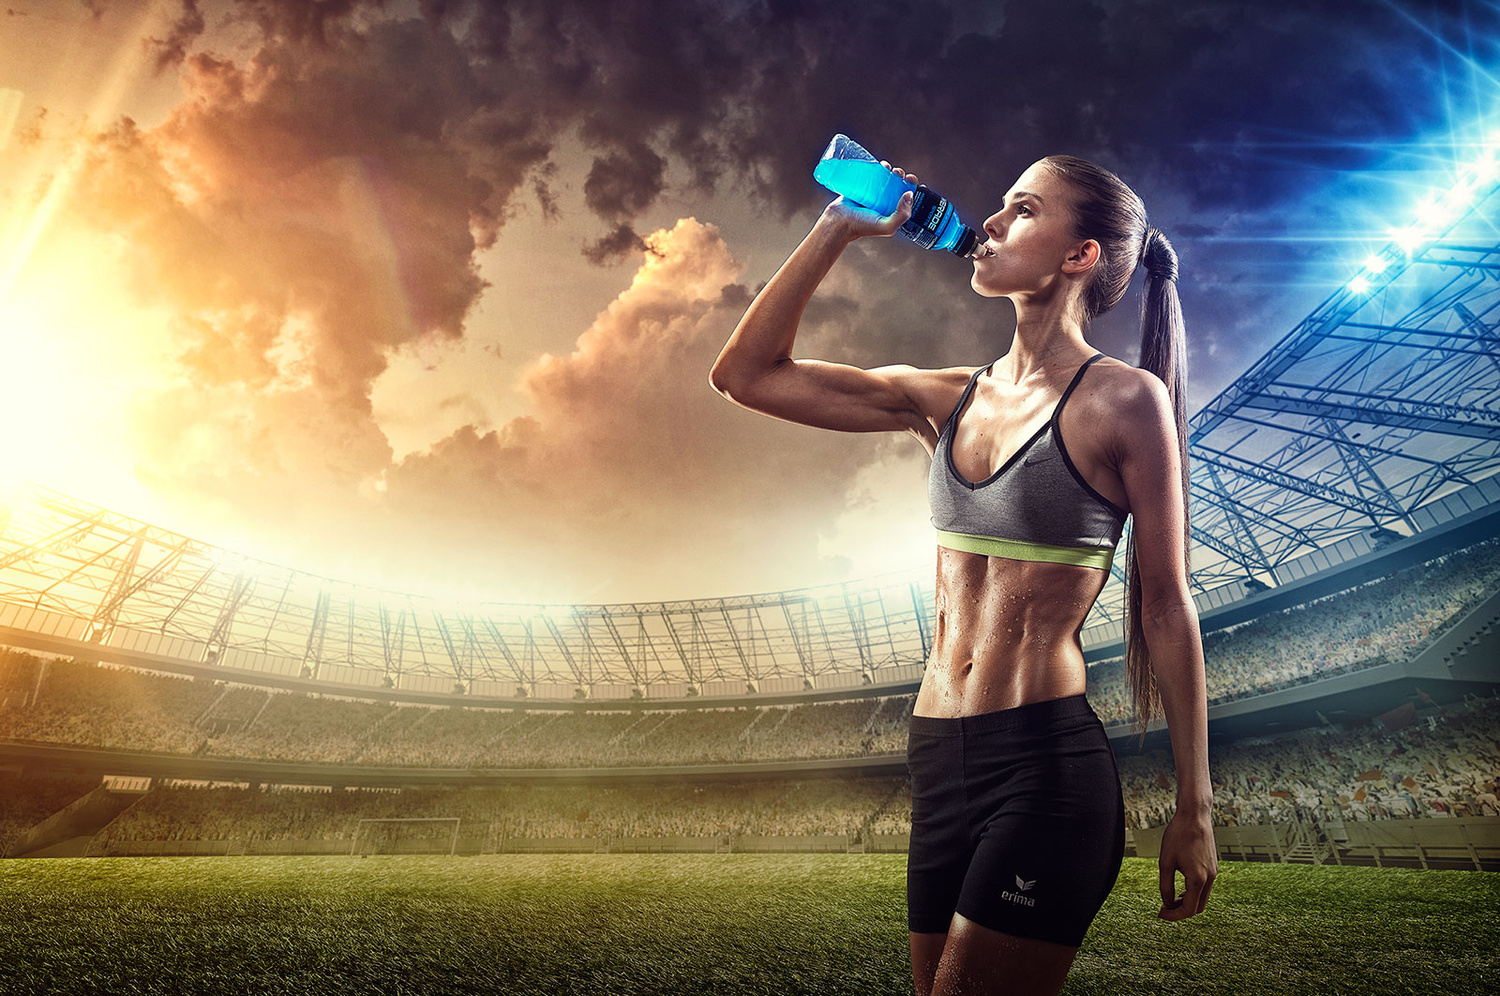 Sports Composite by Diego Angarita